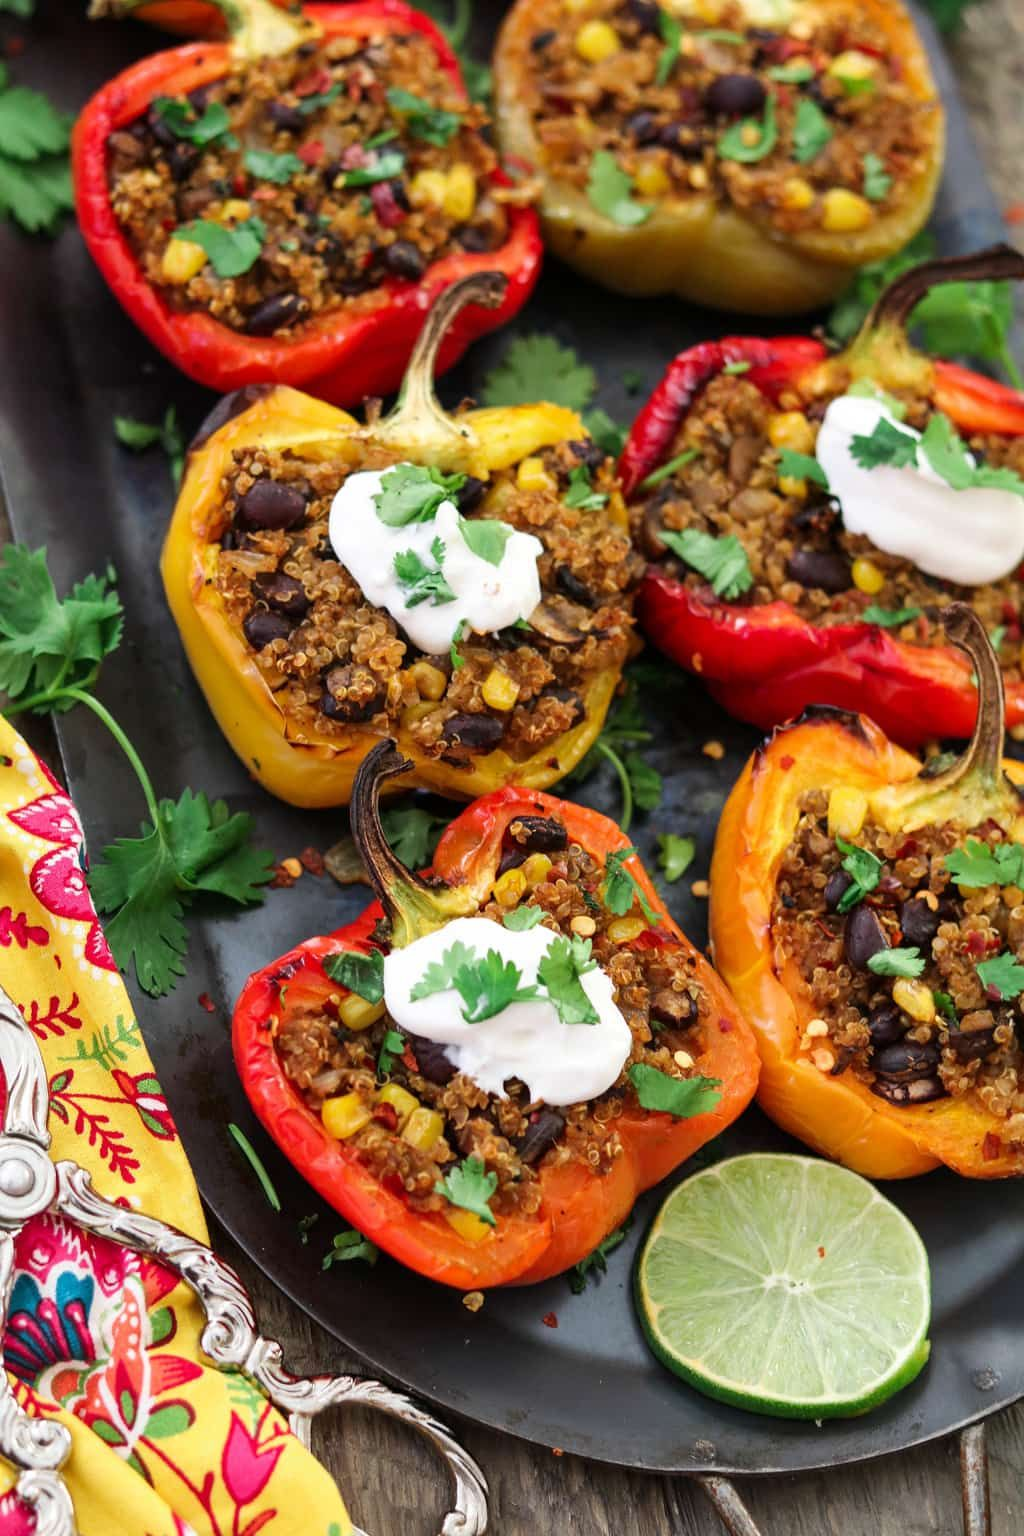 Santa Fe Quinoa Stuffed Peppers Recipe Organic Nutrition Organic Recipes Food